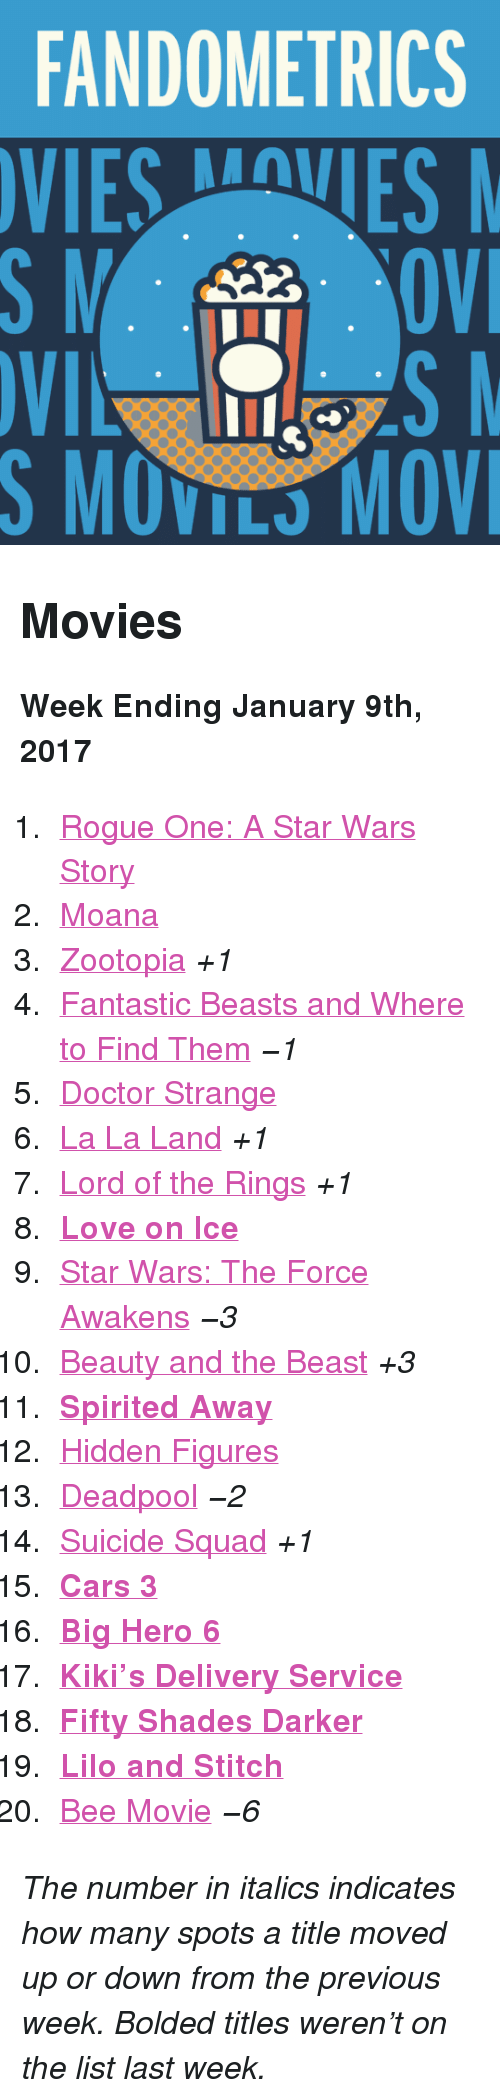 """Star Wars: The Force Awakens: FANDOMETRICS  VIESVES  S MOVILS MOV <h2>Movies</h2><p><b>Week Ending January 9th, 2017</b></p><ol><li><a href=""""http://www.tumblr.com/search/rogue%20one"""">Rogue One: A Star Wars Story</a></li>  <li><a href=""""http://www.tumblr.com/search/moana"""">Moana</a></li>  <li><a href=""""http://www.tumblr.com/search/zootopia"""">Zootopia</a><i>+1</i></li>  <li><a href=""""http://www.tumblr.com/search/fantastic%20beasts%20and%20where%20to%20find%20them"""">Fantastic Beasts and Where to Find Them</a><i>−1</i></li>  <li><a href=""""http://www.tumblr.com/search/doctor%20strange"""">Doctor Strange</a></li>  <li><a href=""""http://www.tumblr.com/search/la%20la%20land"""">La La Land</a><i>+1</i></li>  <li><a href=""""http://www.tumblr.com/search/lotr"""">Lord of the Rings</a><i>+1</i></li>  <li><a href=""""http://www.tumblr.com/search/#love%20on%20ice""""><b>Love on Ice</b></a></li>  <li><a href=""""http://www.tumblr.com/search/the%20force%20awakens"""">Star Wars: The Force Awakens</a><i>−3</i></li>  <li><a href=""""http://www.tumblr.com/search/beauty%20and%20the%20beast"""">Beauty and the Beast</a><i>+3</i></li>  <li><a href=""""http://www.tumblr.com/search/spirited%20away""""><b>Spirited Away</b></a></li>  <li><a href=""""http://www.tumblr.com/search/hidden%20figures"""">Hidden Figures</a></li>  <li><a href=""""http://www.tumblr.com/search/deadpool"""">Deadpool</a><i>−2</i></li>  <li><a href=""""http://www.tumblr.com/search/suicide%20squad"""">Suicide Squad</a><i>+1</i></li>  <li><a href=""""http://www.tumblr.com/search/cars%203""""><b>Cars 3</b></a></li>  <li><a href=""""http://www.tumblr.com/search/big%20hero%206""""><b>Big Hero 6</b></a></li>  <li><a href=""""http://www.tumblr.com/search/kiki's%20delivery%20service""""><b>Kiki&rsquo;s Delivery Service</b></a></li>  <li><a href=""""http://www.tumblr.com/search/fifty%20shades%20darker""""><b>Fifty Shades Darker</b></a></li>  <li><a href=""""http://www.tumblr.com/search/lilo%20and%20stitch""""><b>Lilo and Stitch</b></a></li>  <li><a href=""""http://www.tumblr.com/search/bee%20movie"""">Bee Movie</a><i>−6</i></li>"""